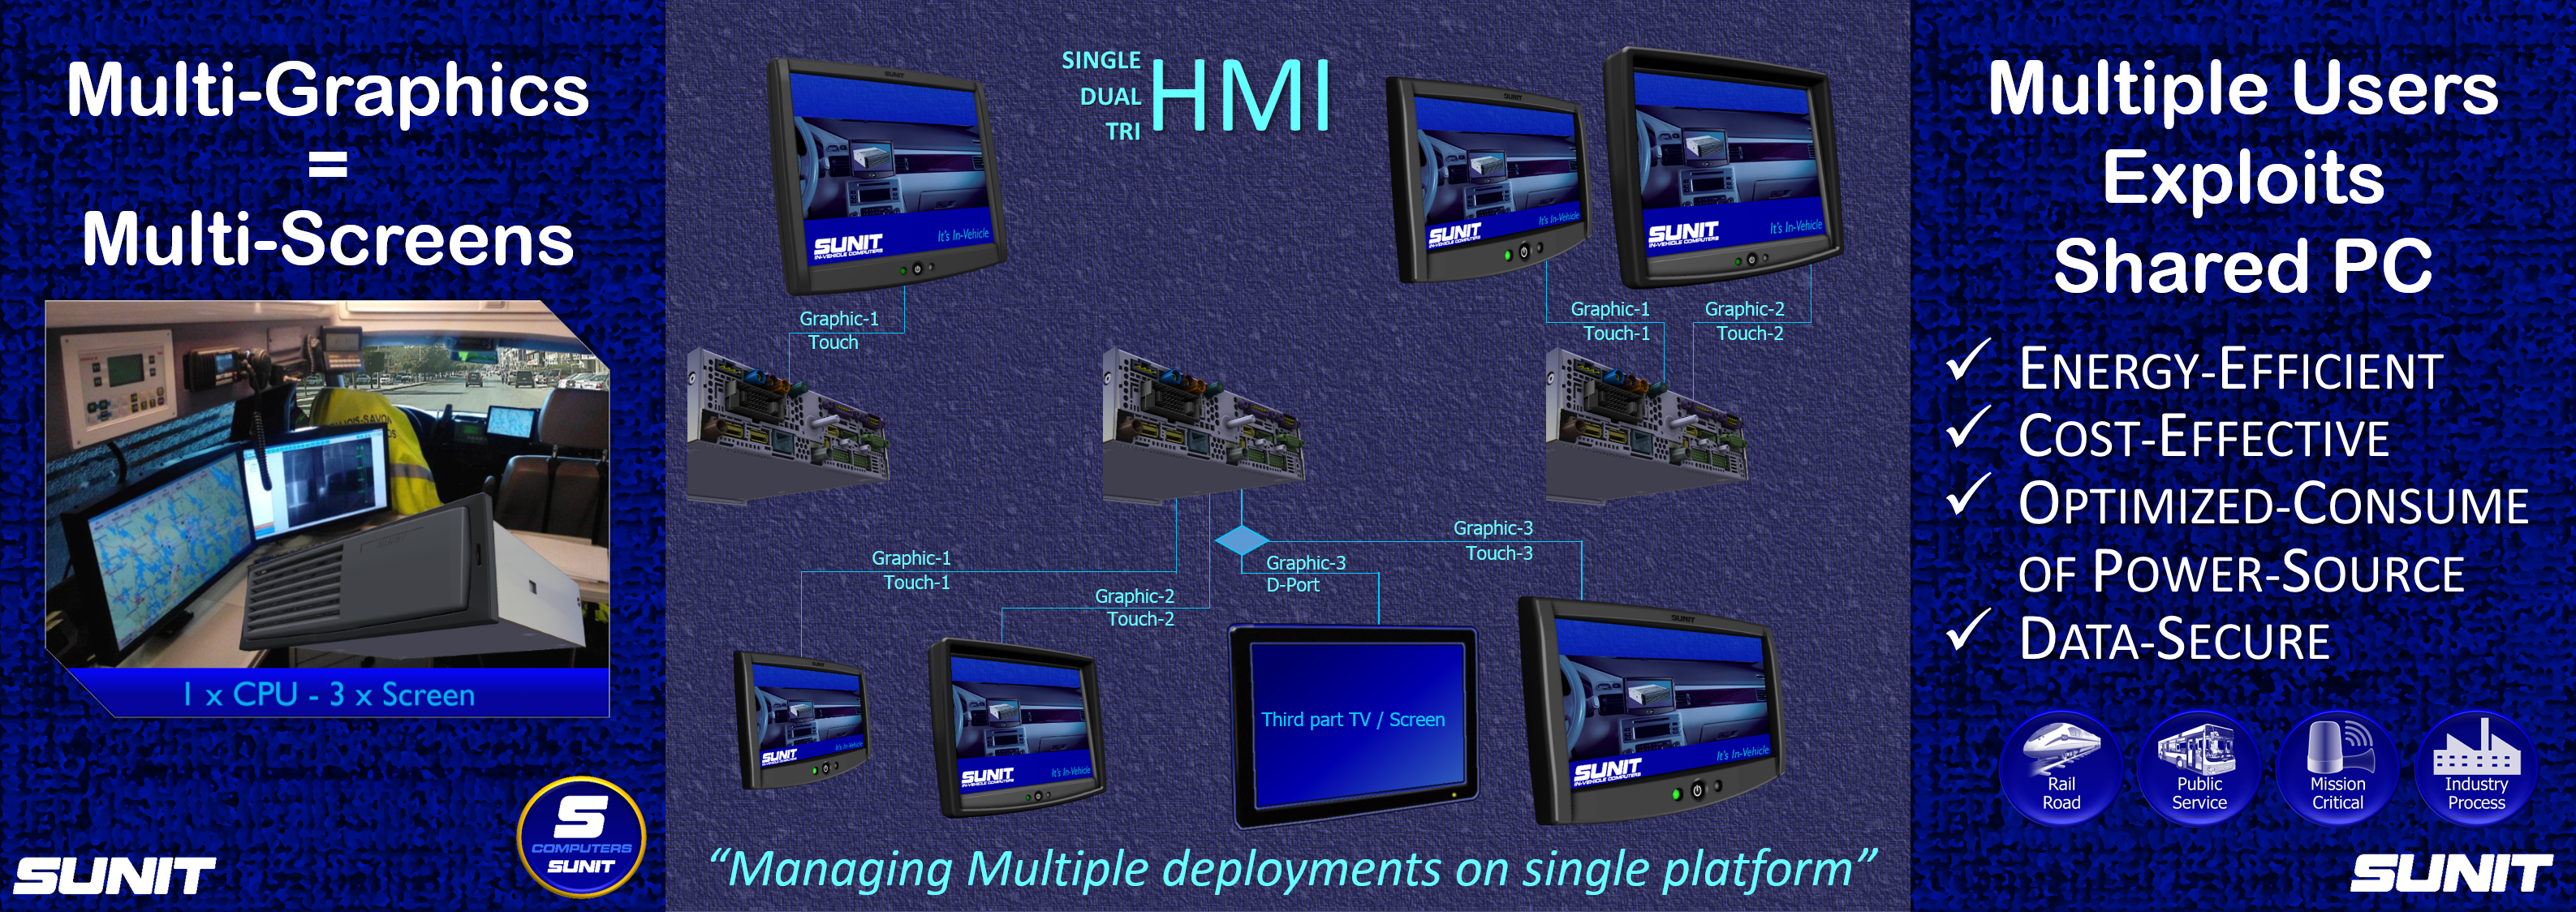 SUNIT HMI Technology by Multi-Screens